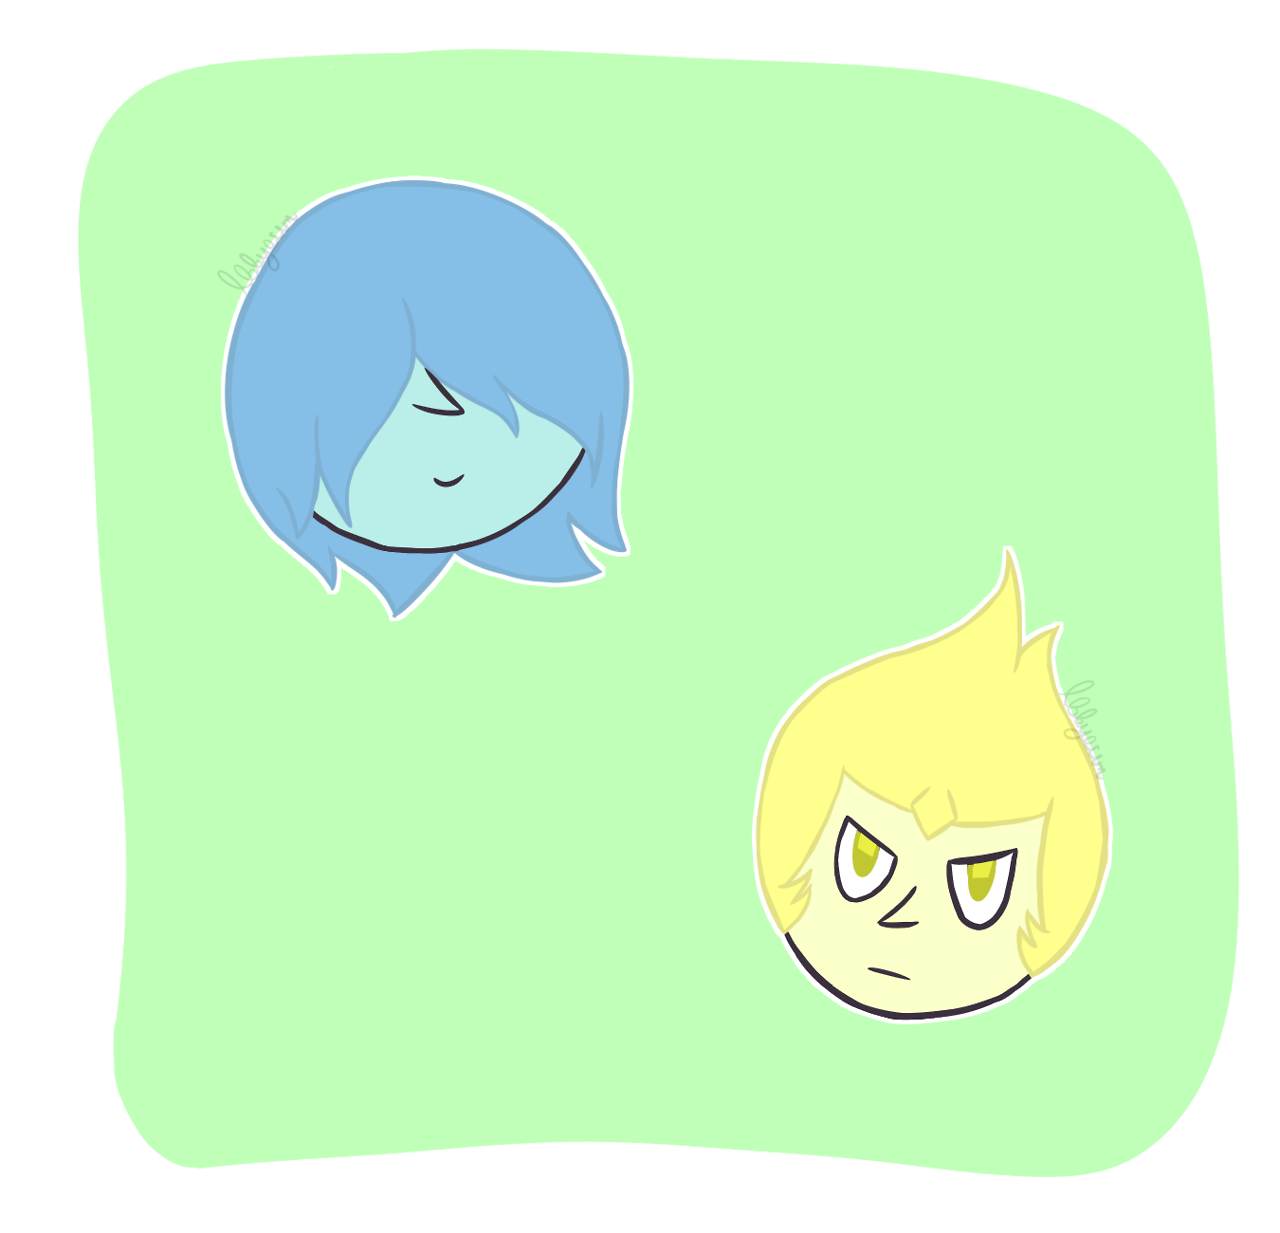 Oh snap its blue and yellow pearl